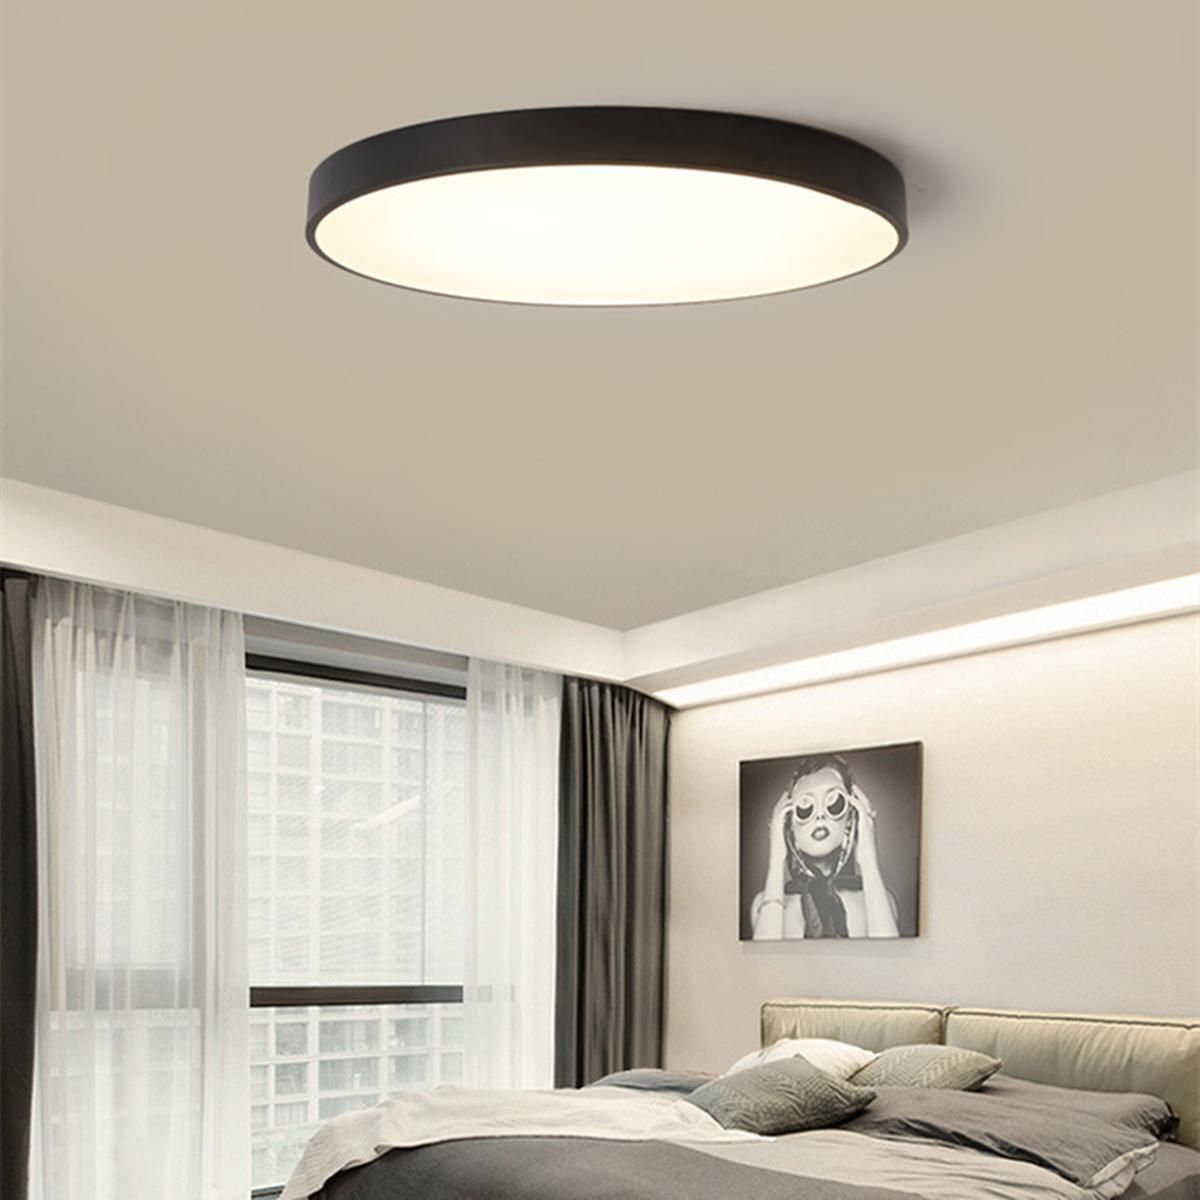 Led Round Modern Ceiling Light Home Bedroom Hallway Mount Fixture Lamp Decor Buy Led Round Modern Ceiling Light Home Bedroom Hallway Mount Fixture Lamp Decor Online At Low Price In India On